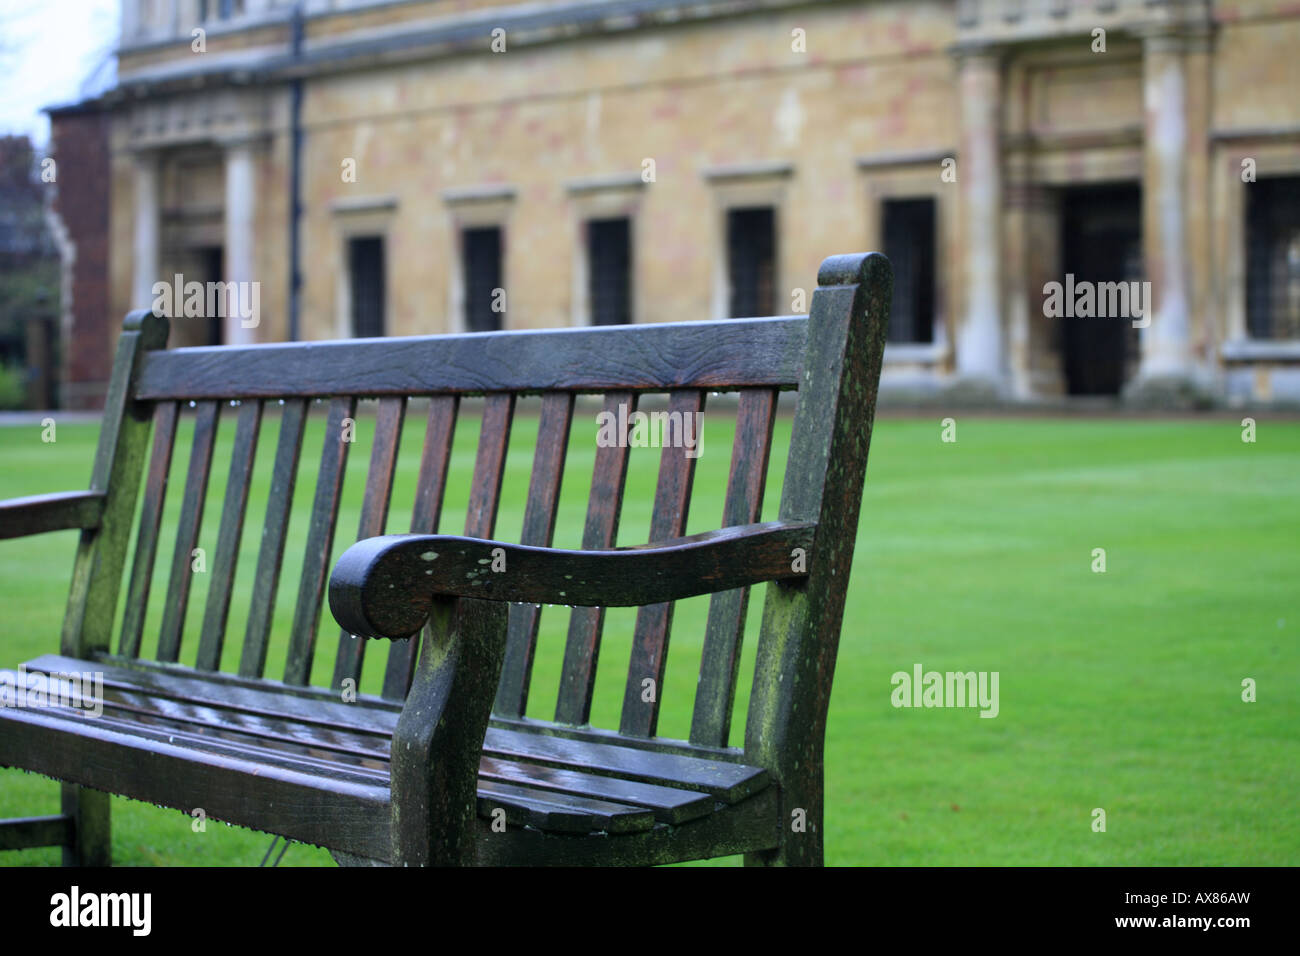 Terrific Trinity College Cambridge Wooden Bench On The Lawns In Ibusinesslaw Wood Chair Design Ideas Ibusinesslaworg